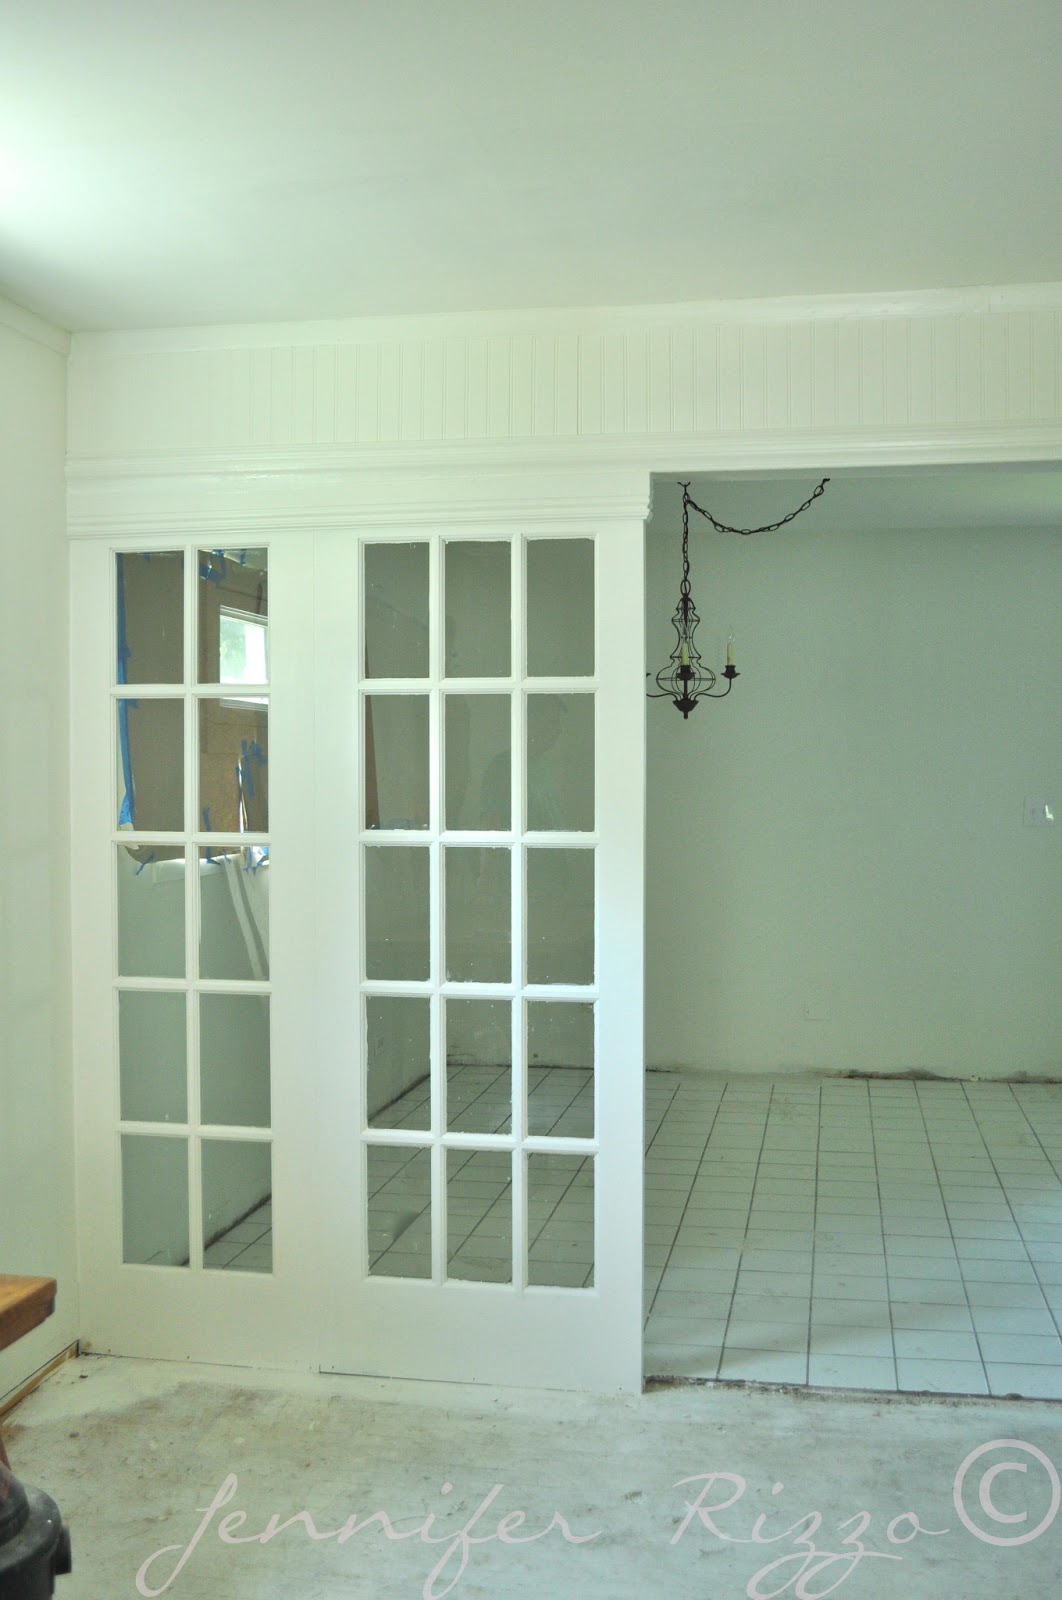 Room Dividers: Divide Your Space By Using French Doors As Room Dividers